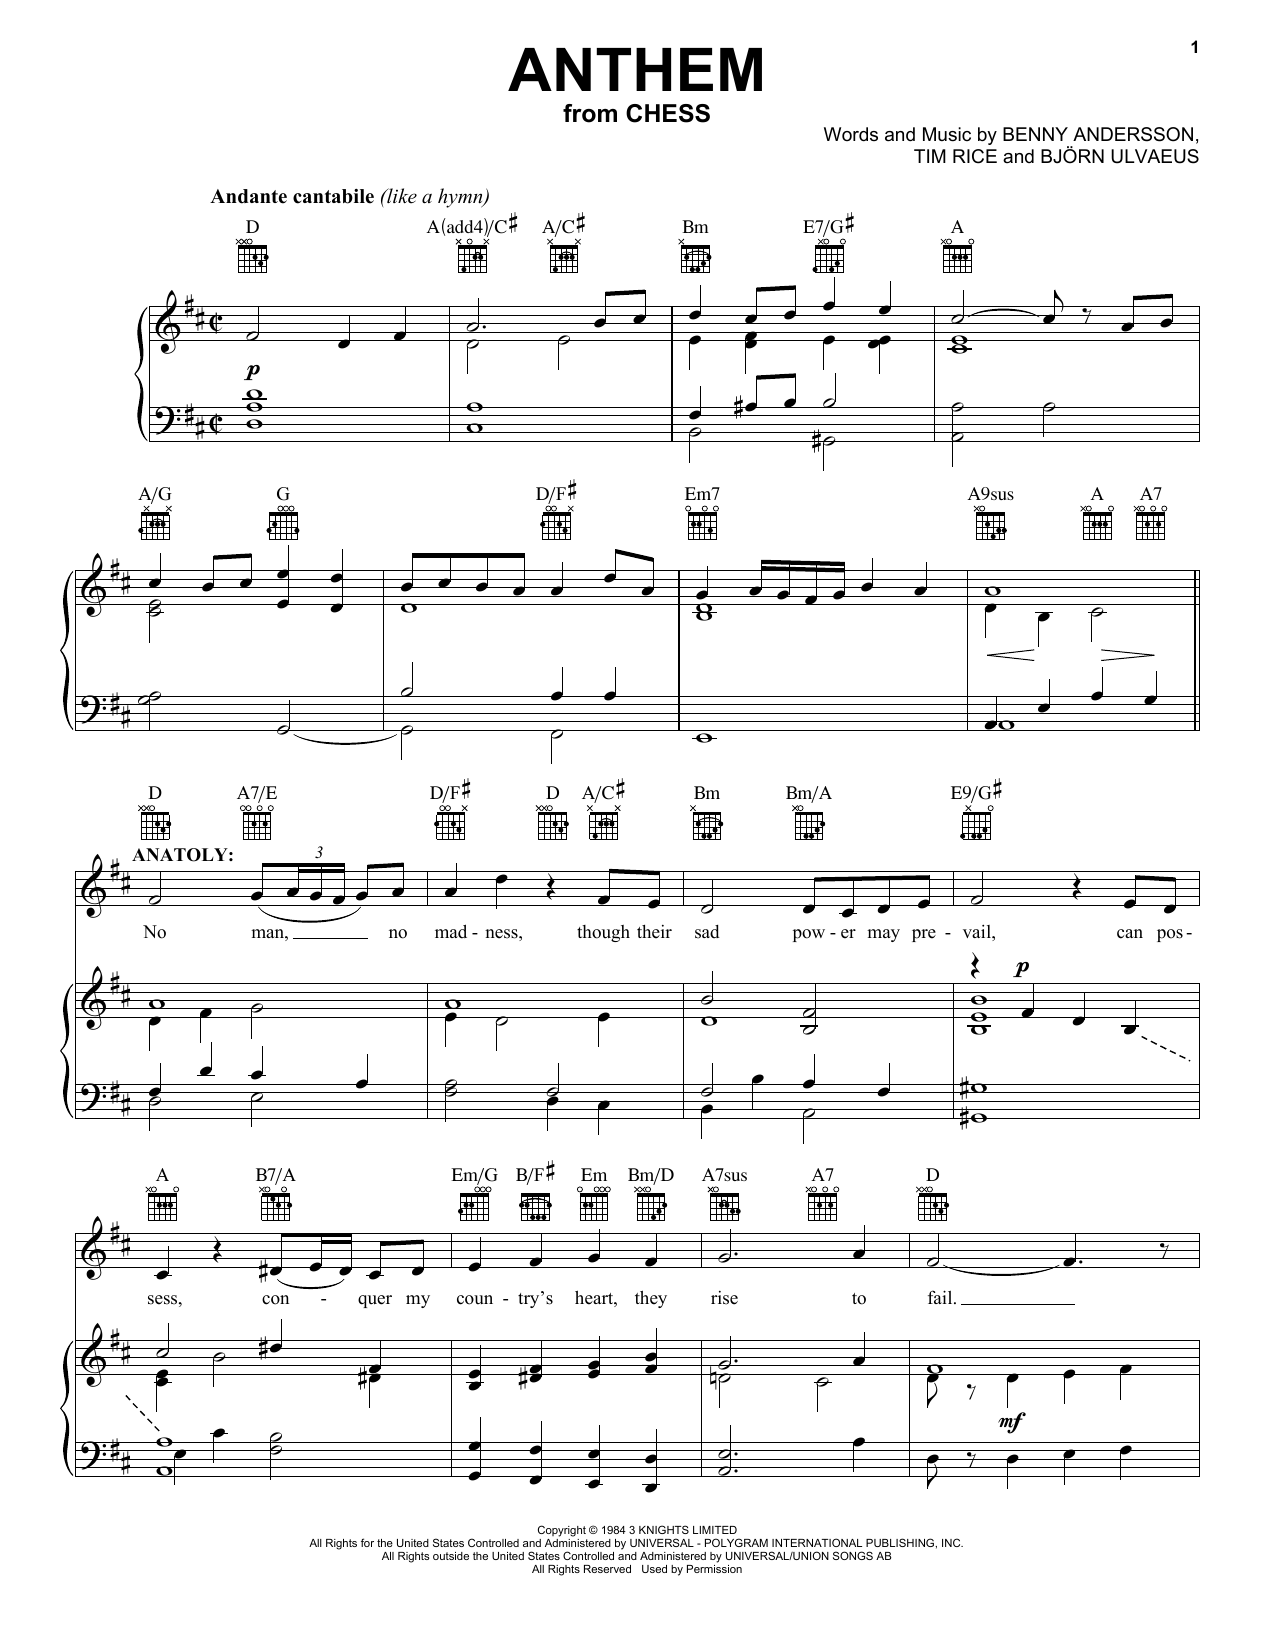 Andersson and Ulvaeus Anthem (from Chess) sheet music notes and chords. Download Printable PDF.